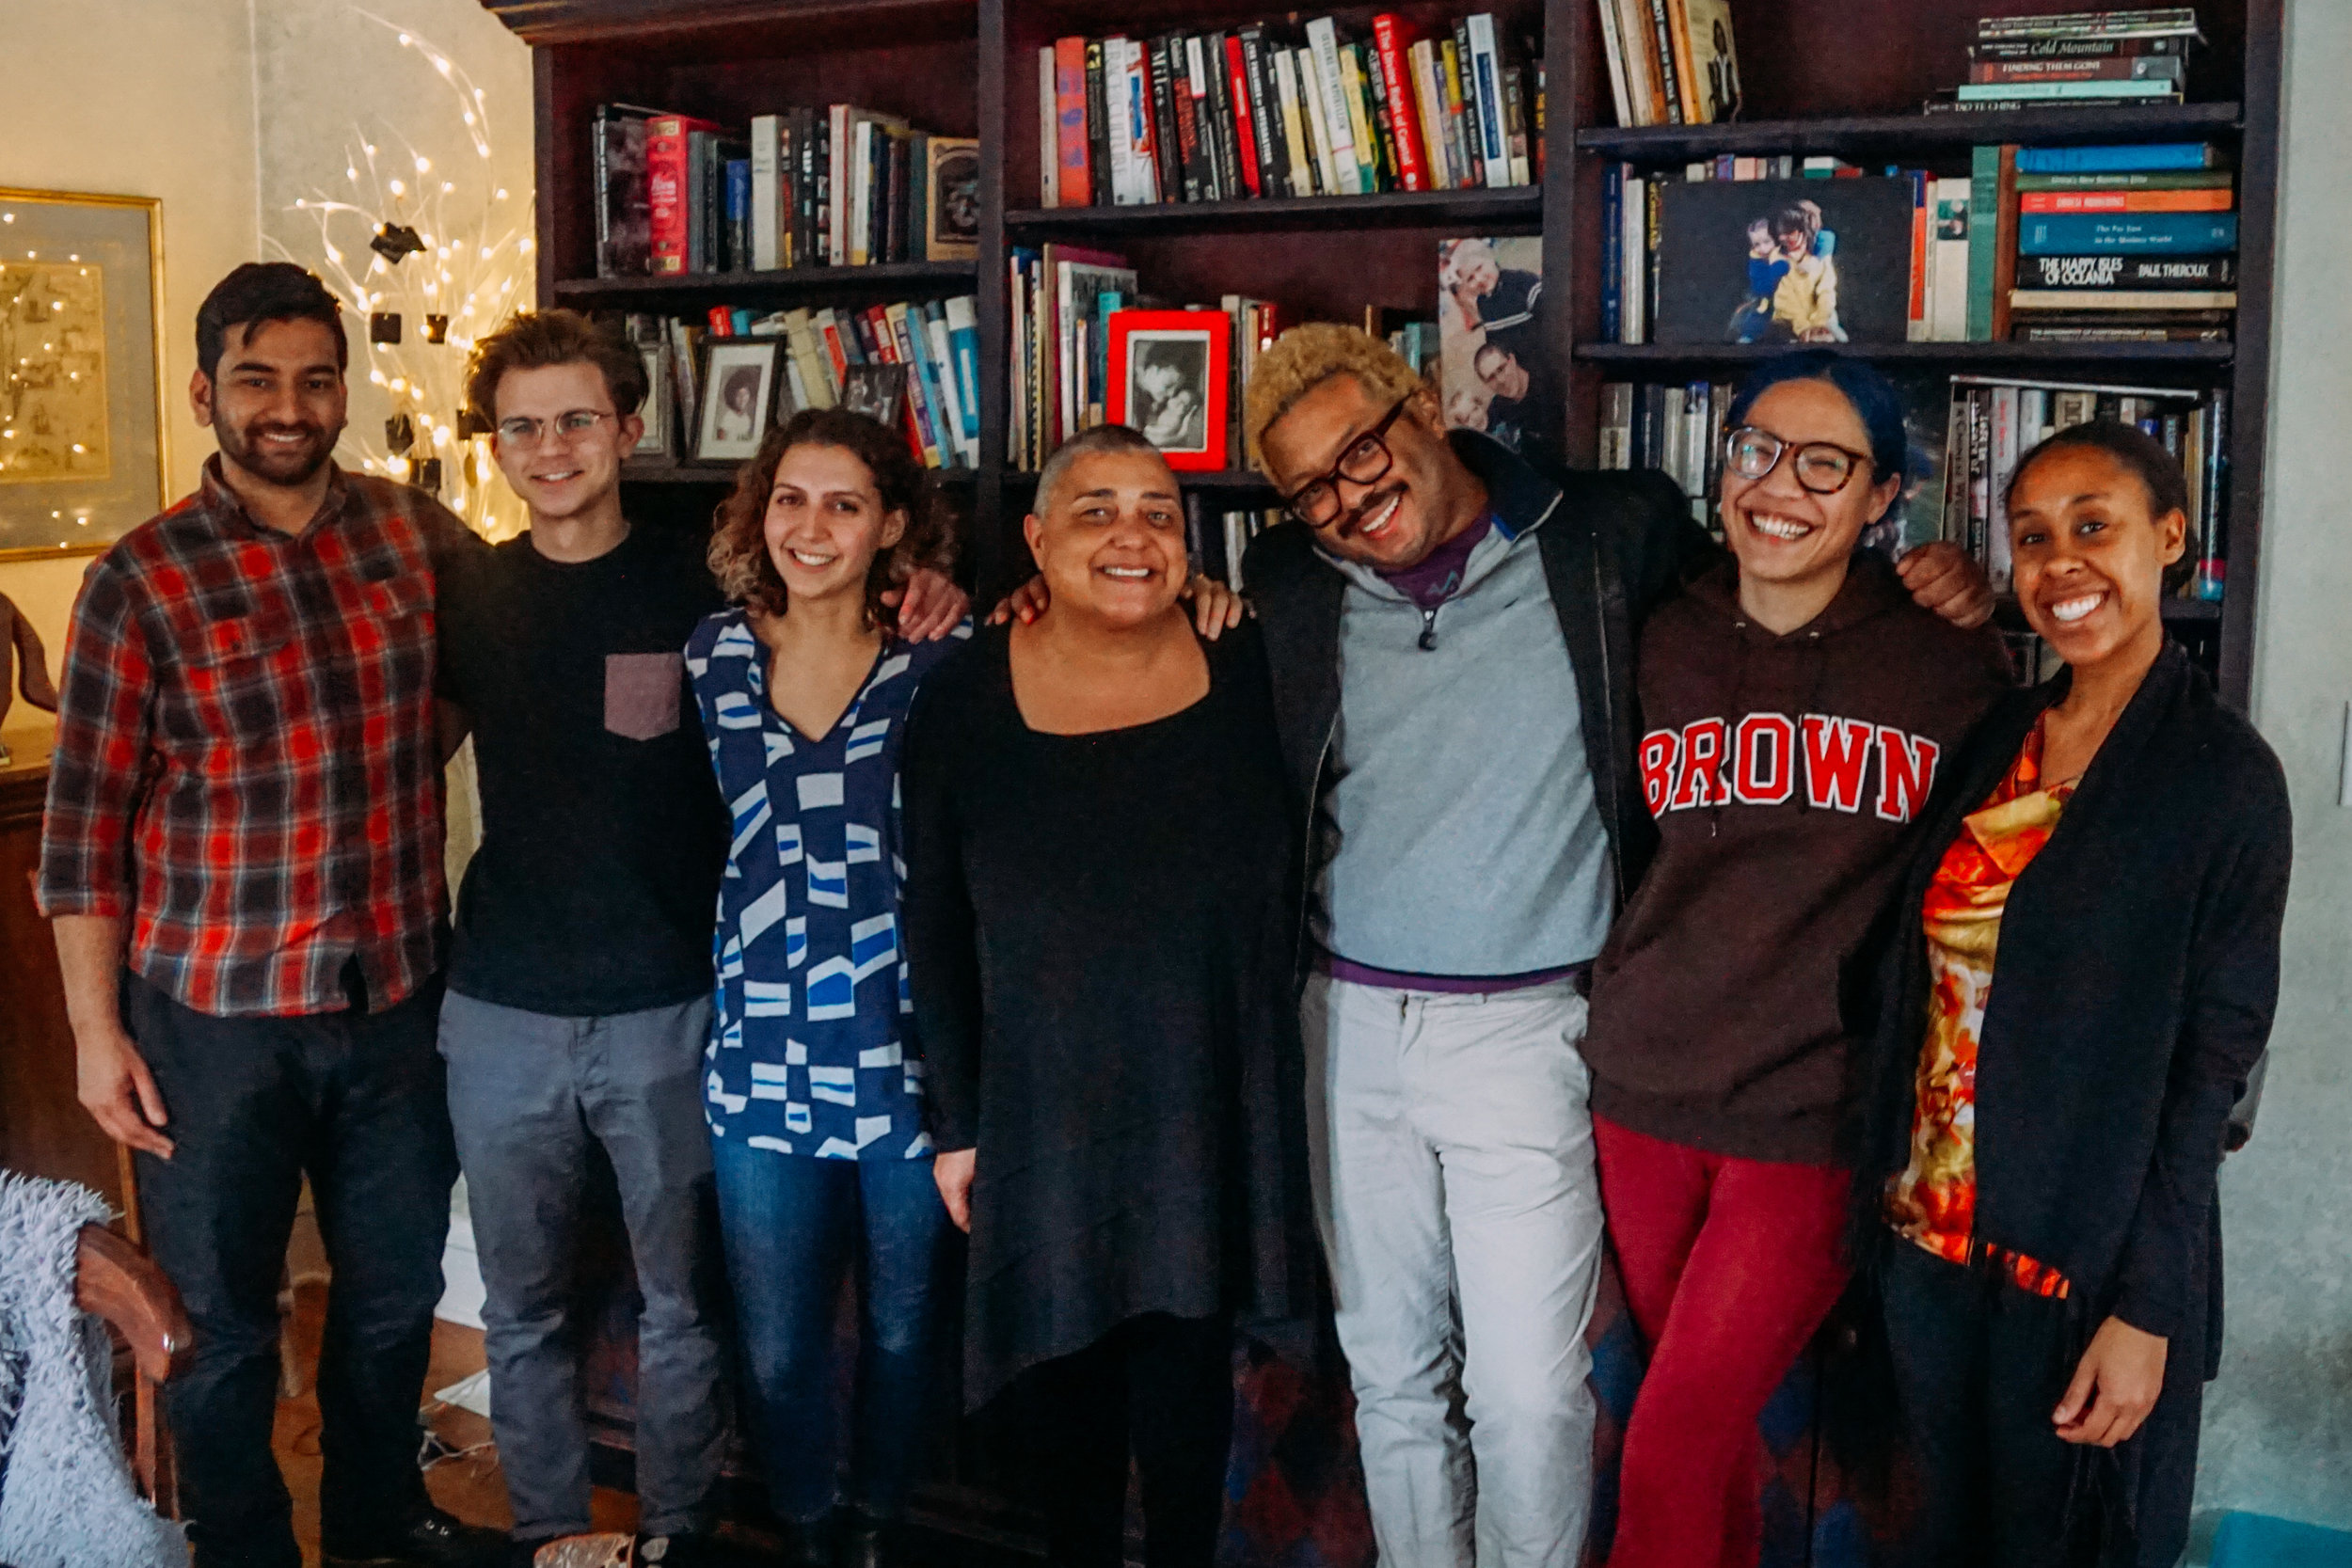 From left to right: Aswar, Sam, Carina (me), Marnita, Elijah, Elexis, and Lauren at the Marnita's Table office.